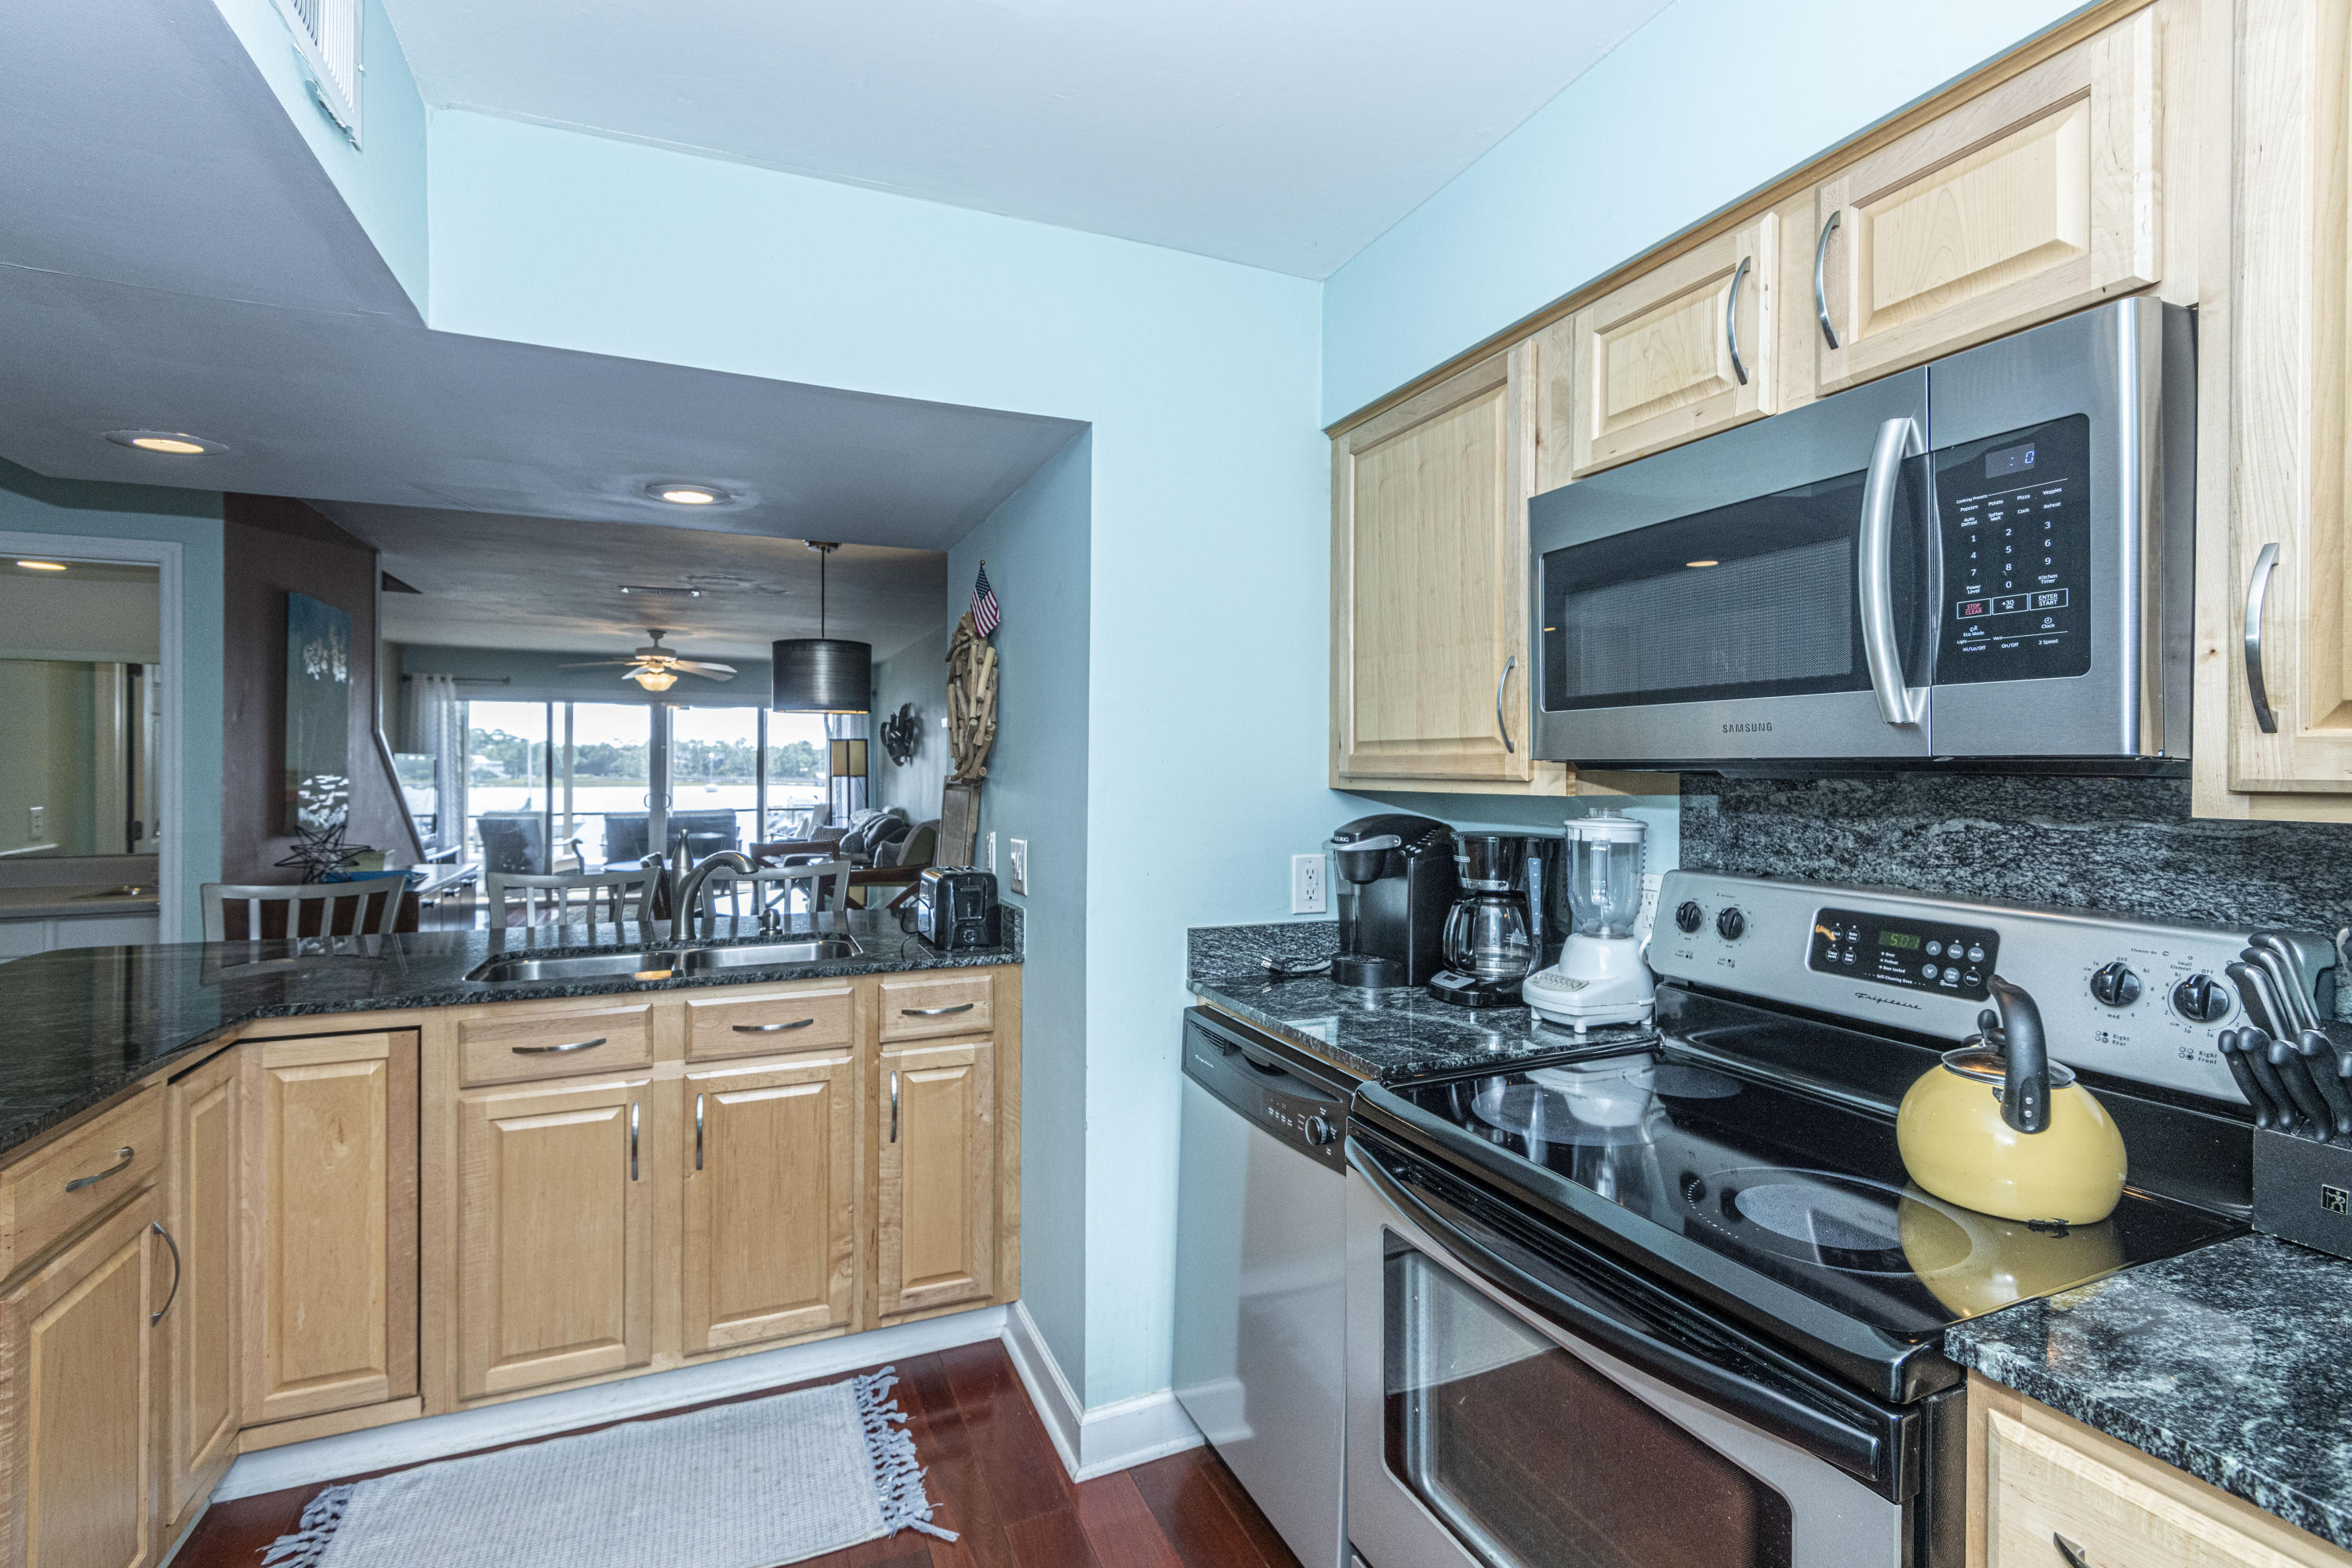 Mariners Cay Homes For Sale - 60 Mariners Cay, Folly Beach, SC - 0